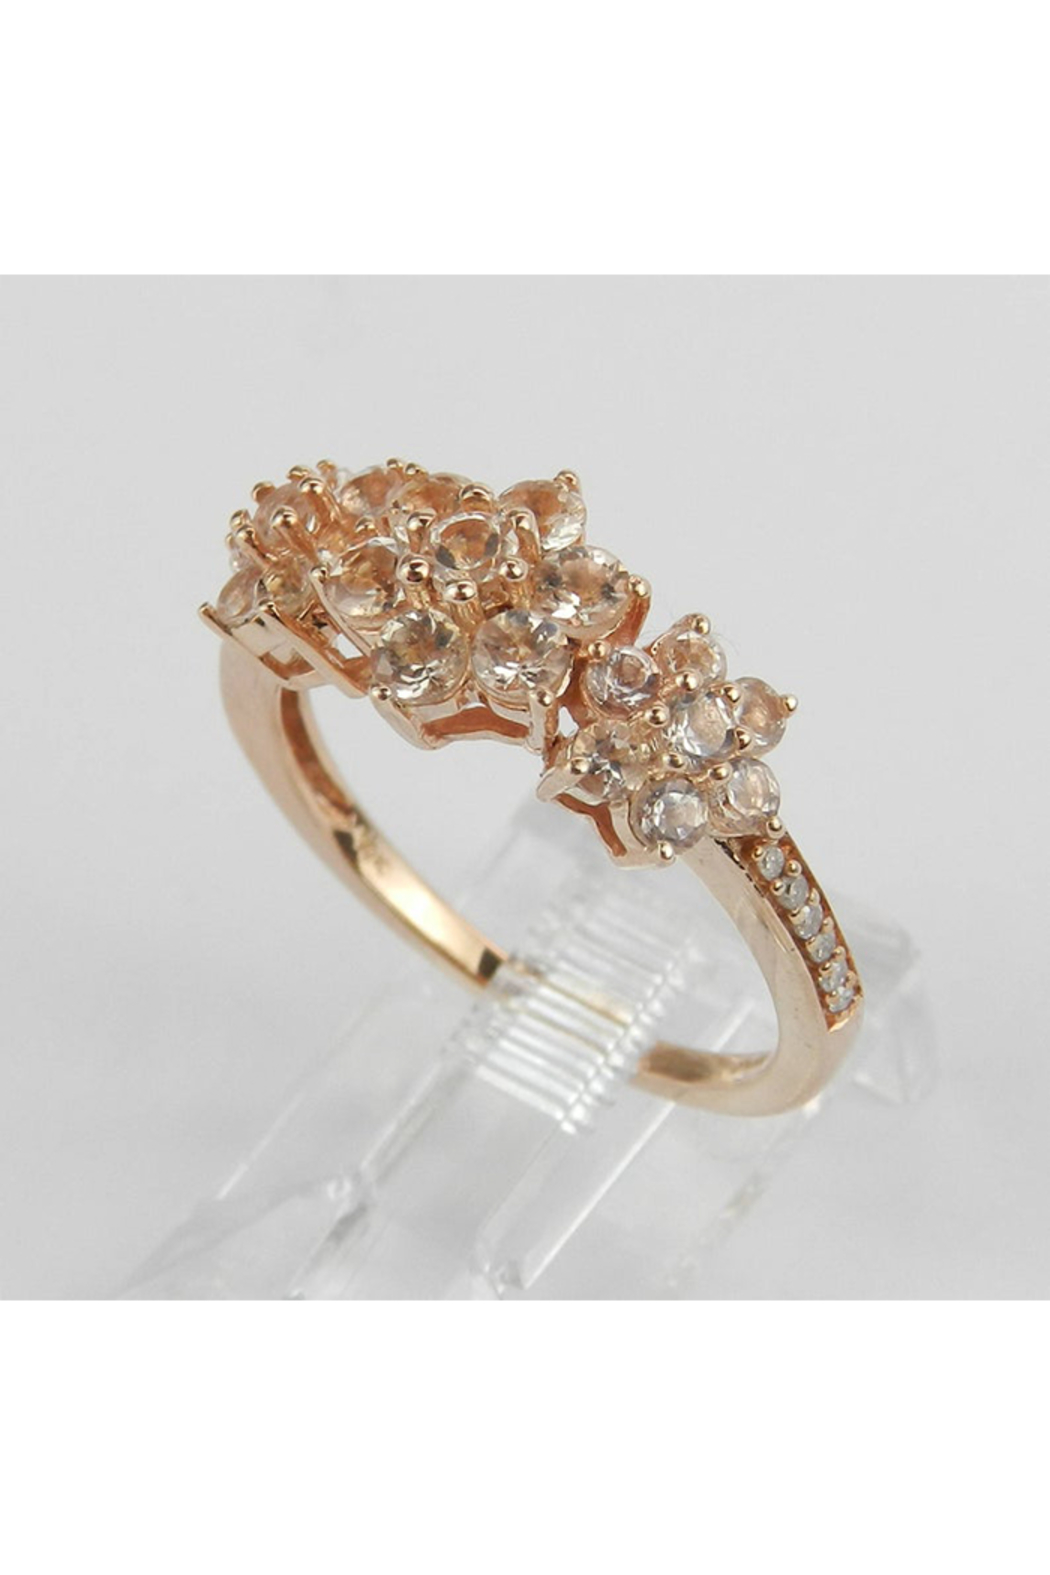 Margolin & Co Morganite and Diamond Flower Cluster Anniversary Ring Rose Pink Gold Size 7 - Side Cropped Image